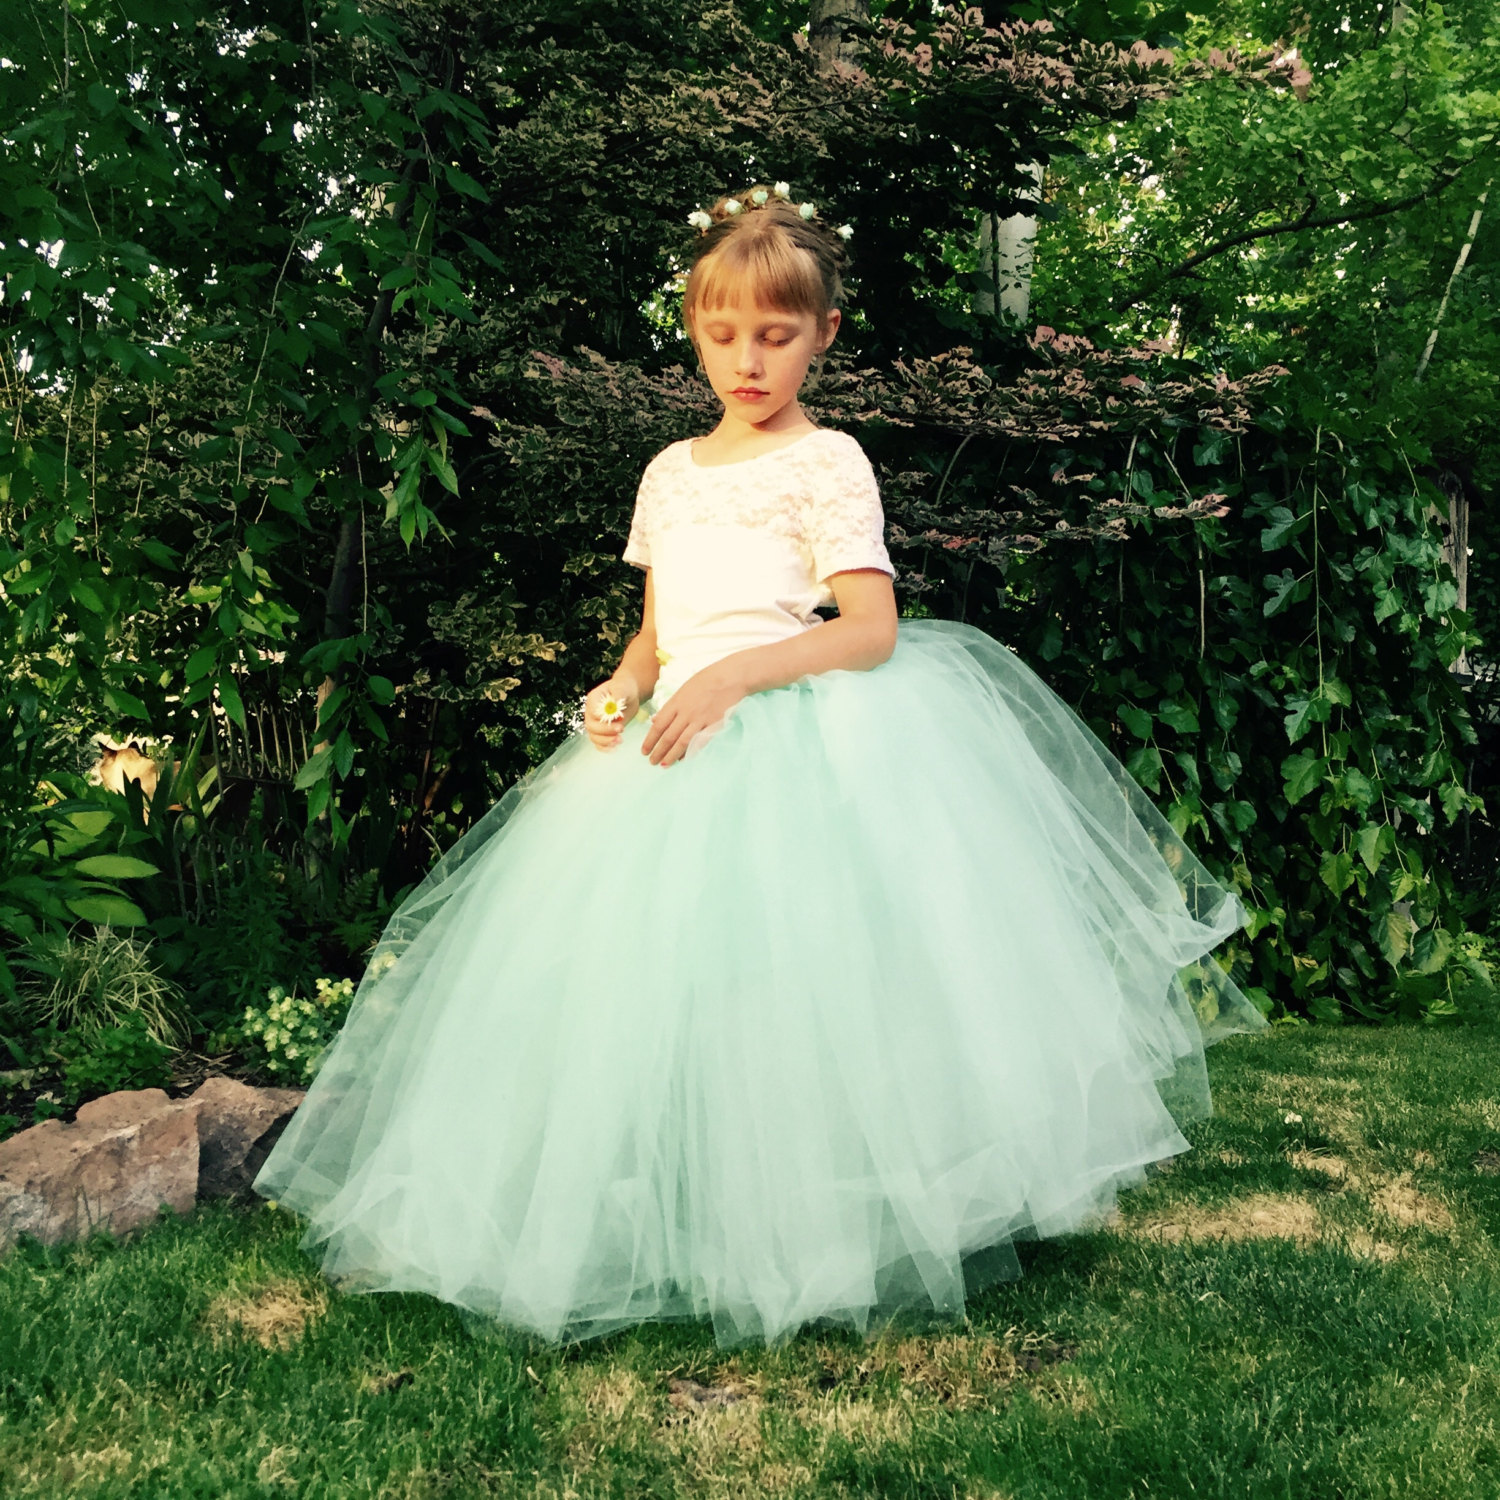 Wedding Flower Girl: Flower Girl Dress Mint Green Floor Length Tulle Skirt